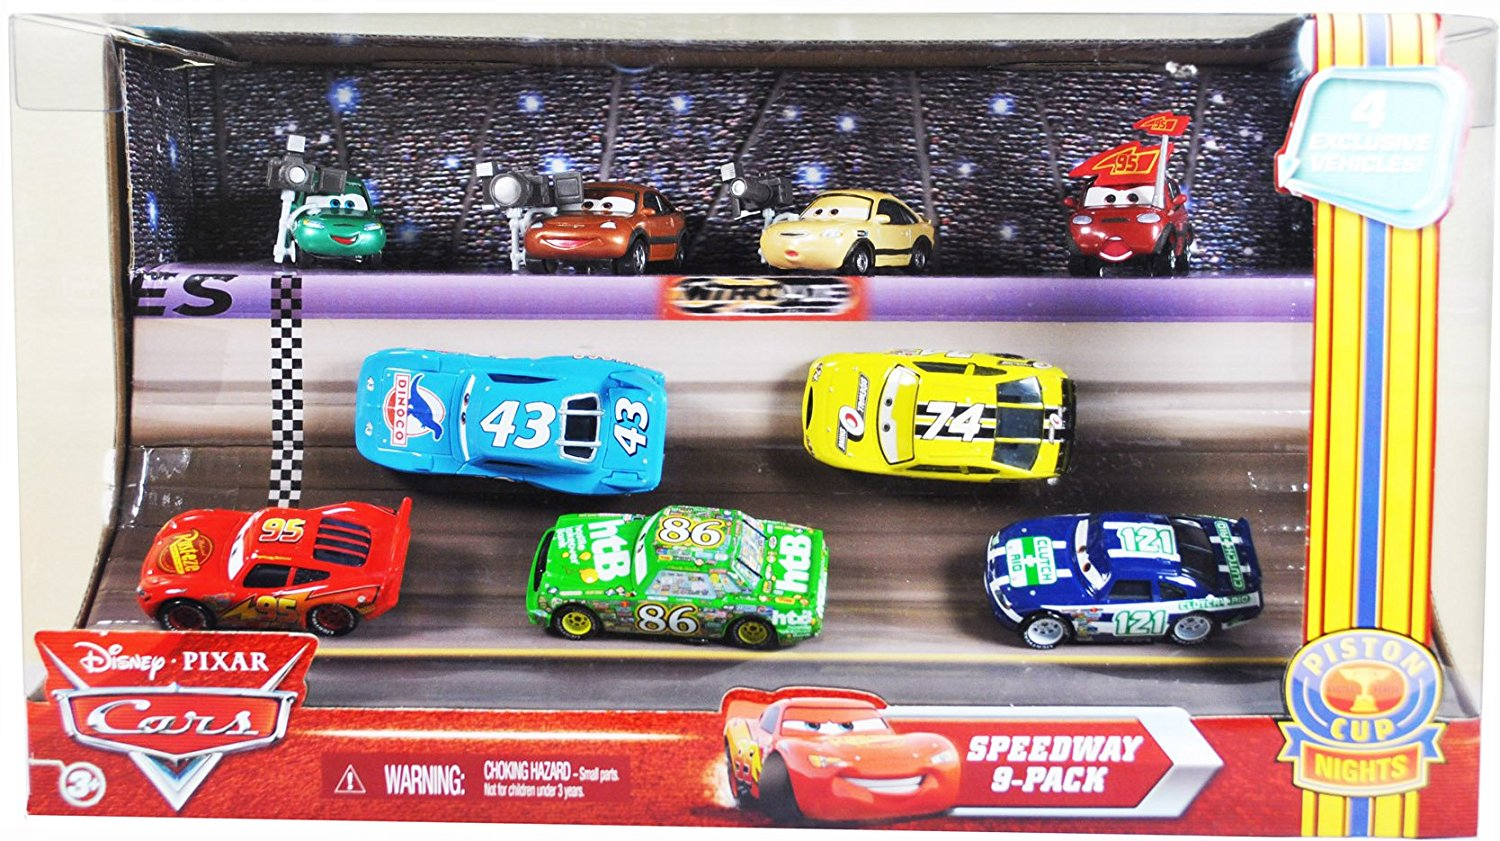 "Disney Pixar Movie Series ""Cars"" EXCLUSIVE Piston Cup Nights Racing Series Speedway 9-Pack Set with Dash Boardman, Houser Boon, Tim Rimmer, Timothy Twostroke, Lightning McQueen, The King, Chick Hicks, Sidewall Shine No.74 and Clutch Aid No. 121"